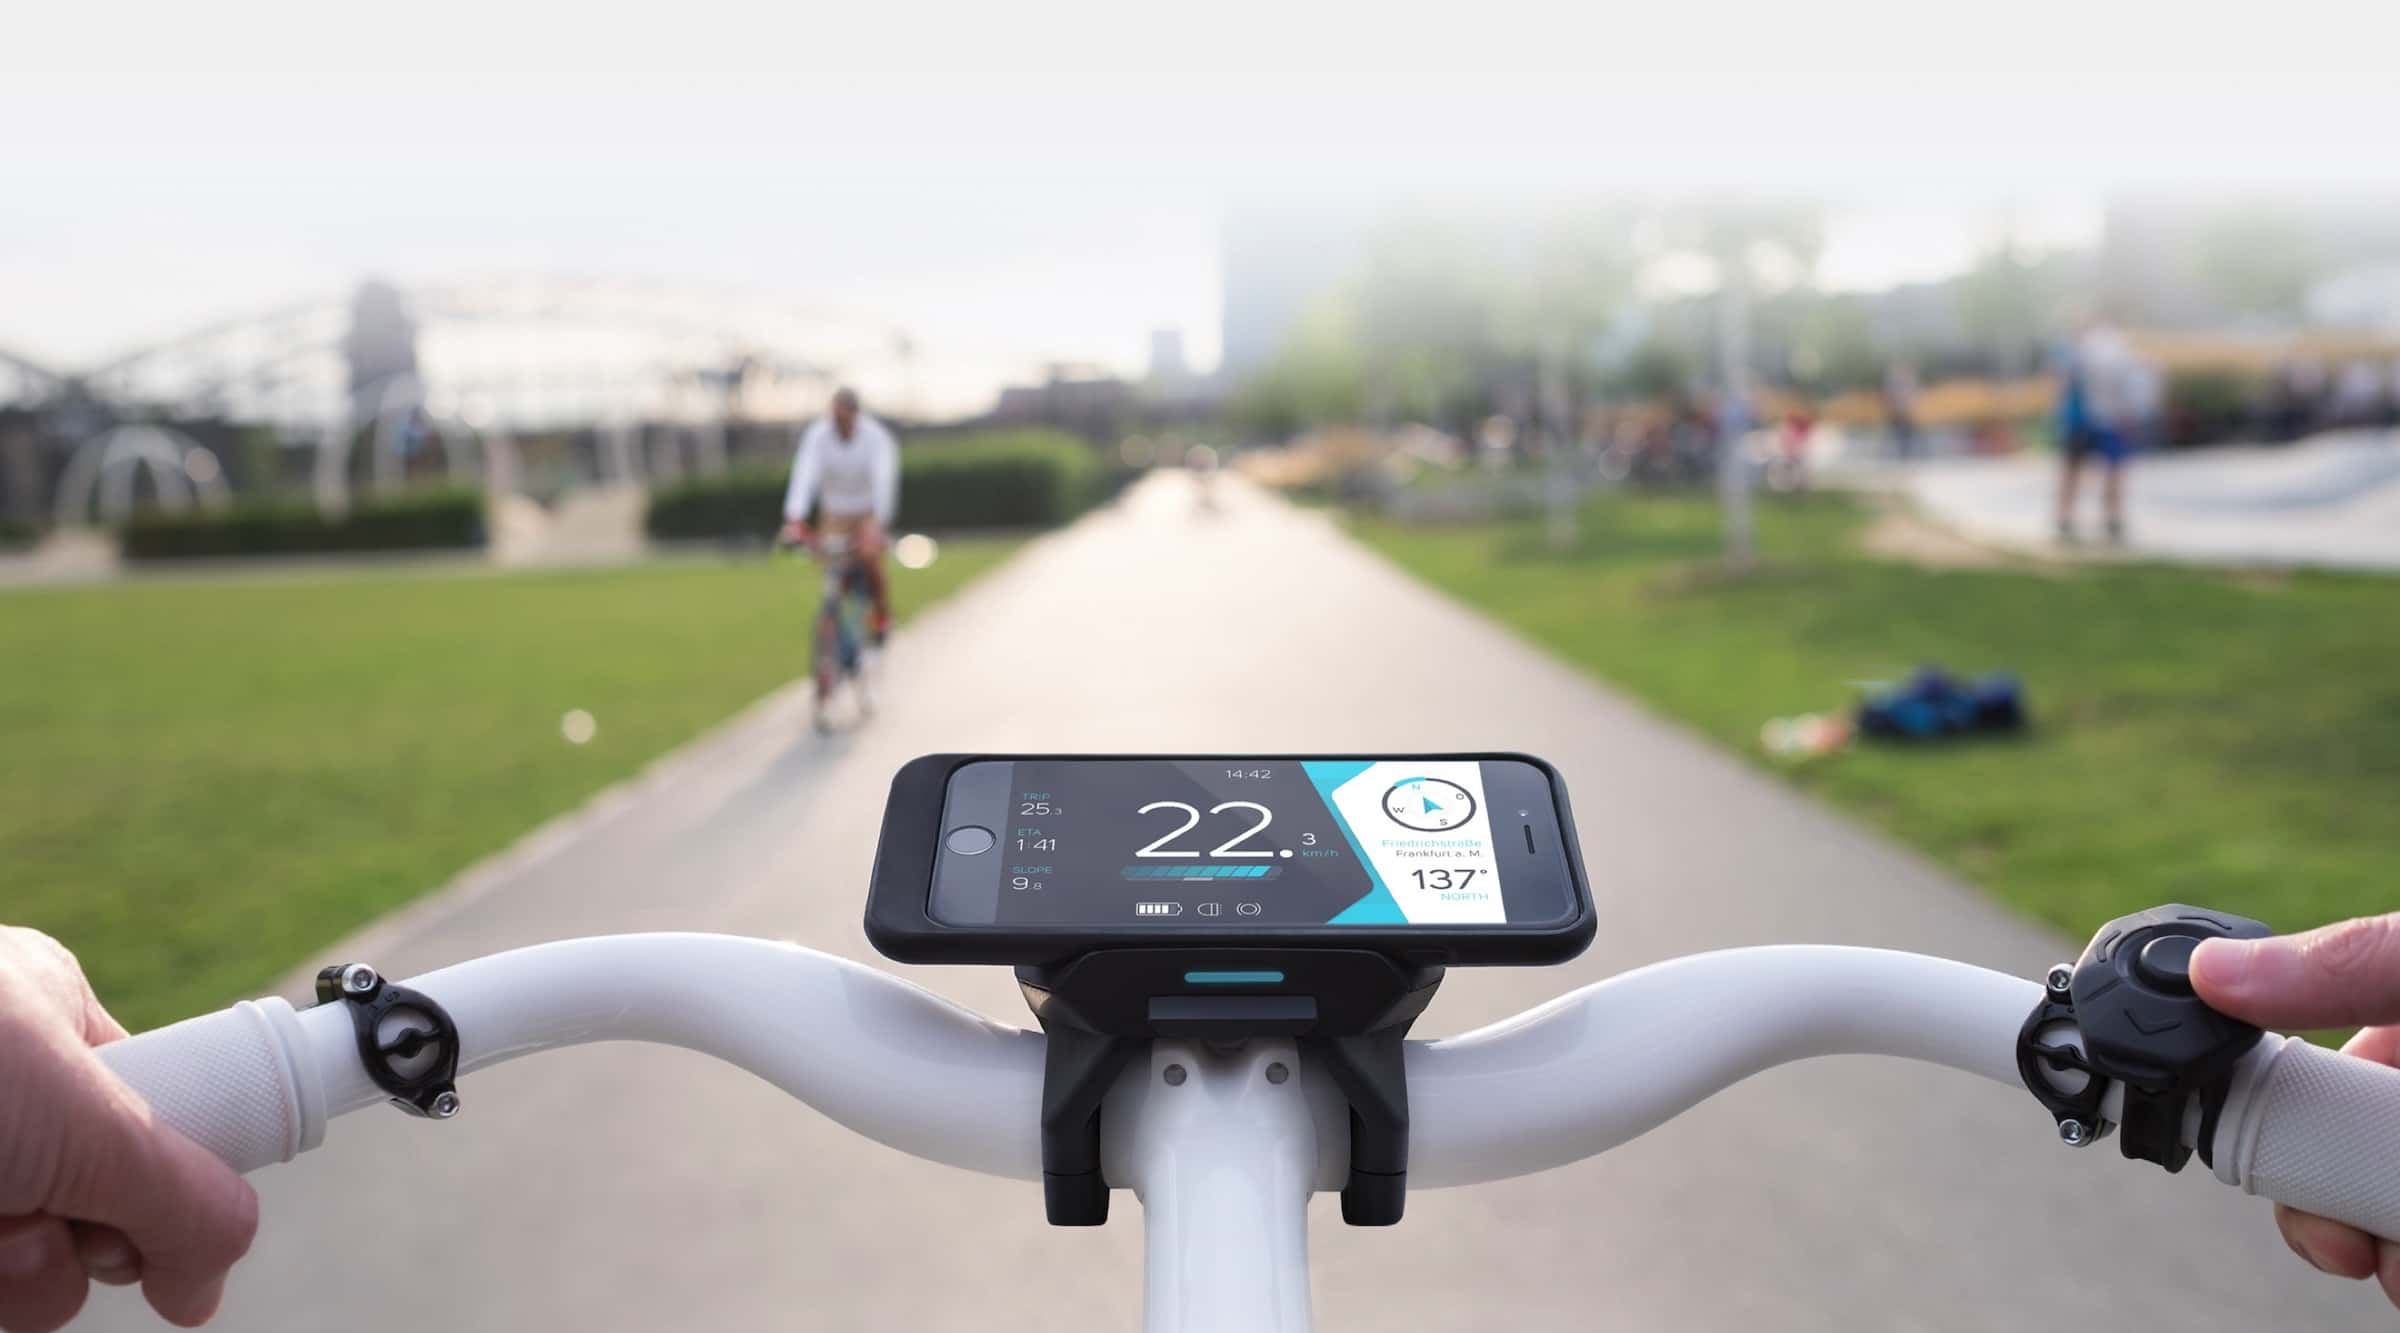 COBI – Connected Bike